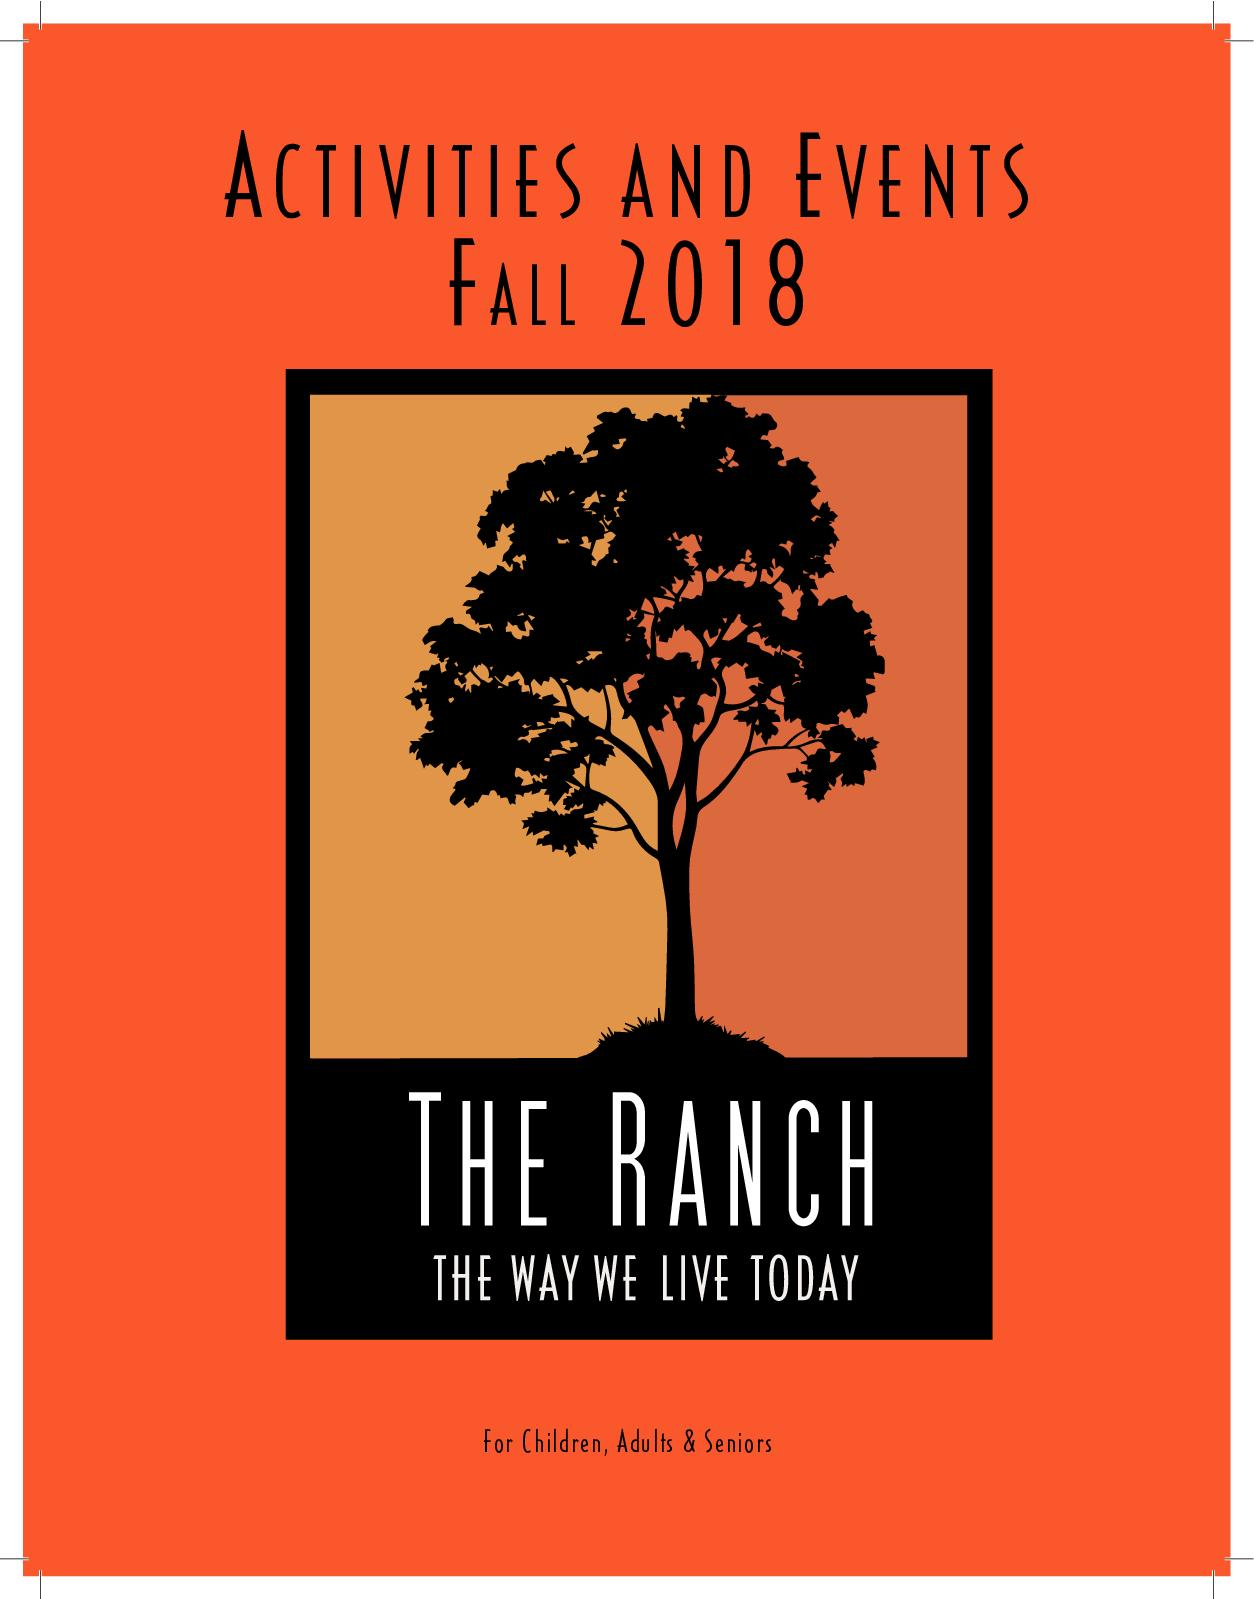 Calaméo - The Ranch Fall 2018 Activity Guide